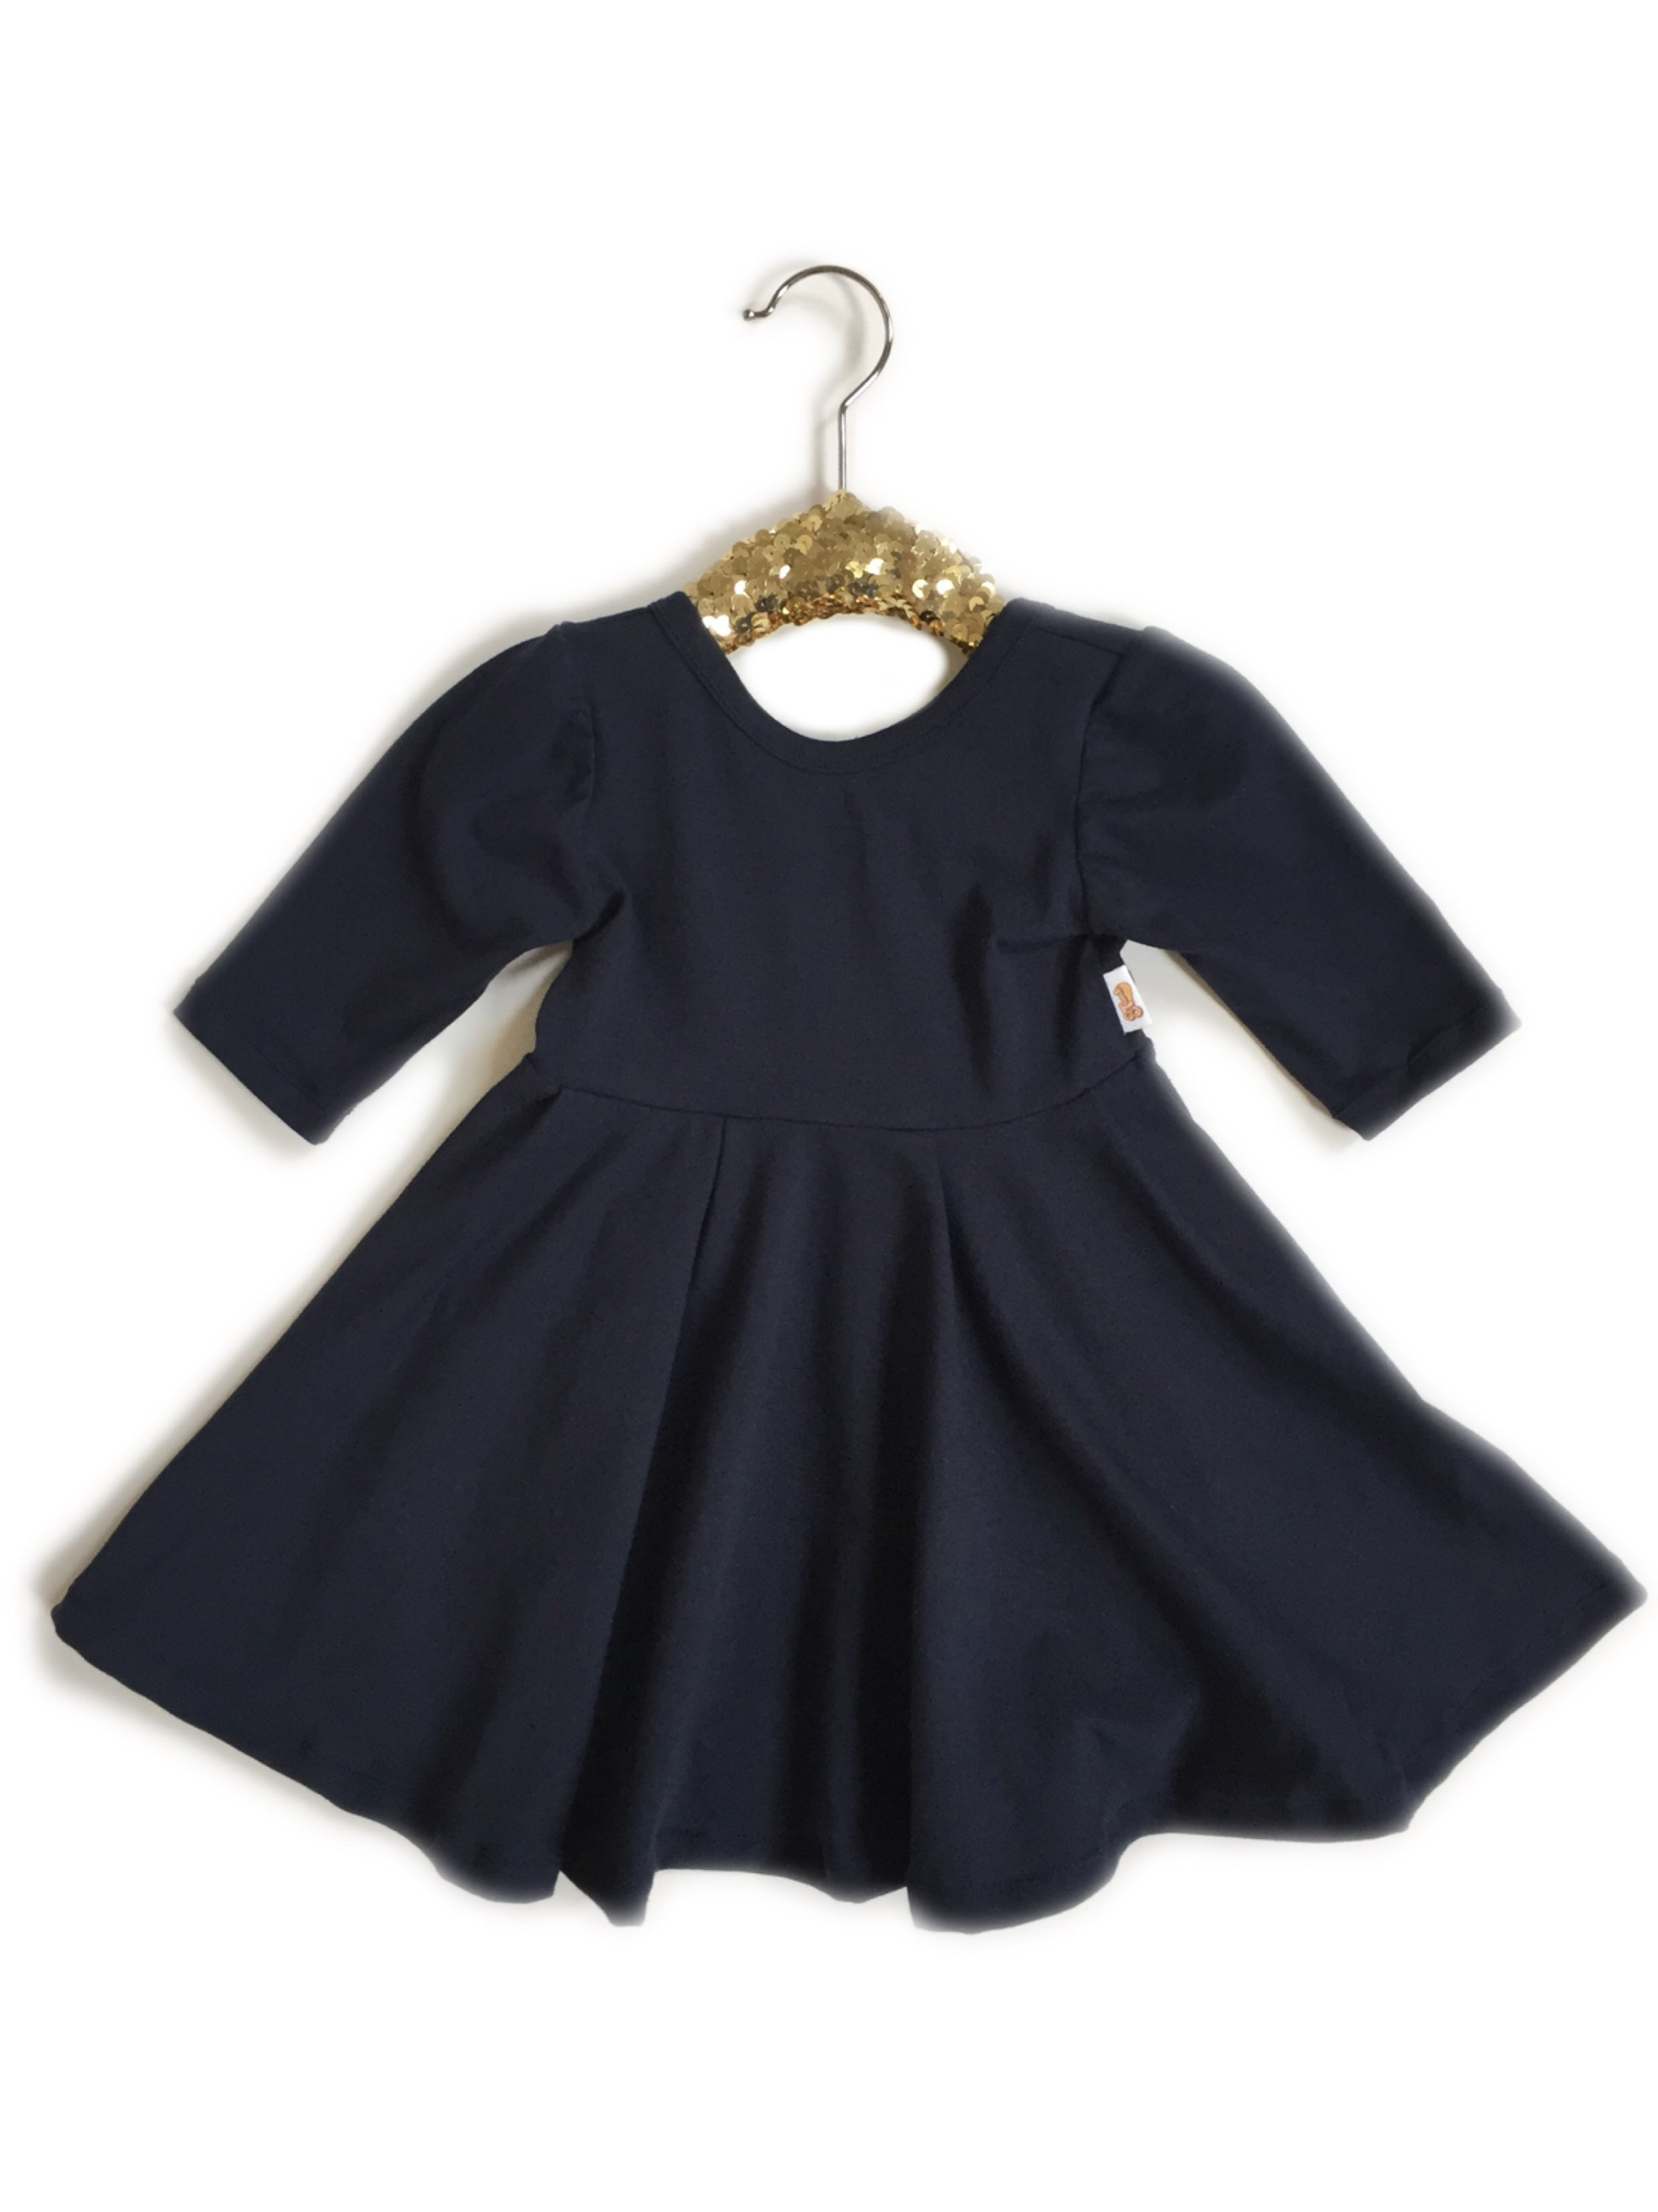 Navy Blue Twirl Dress (Choose from 3 Sleeve Options)